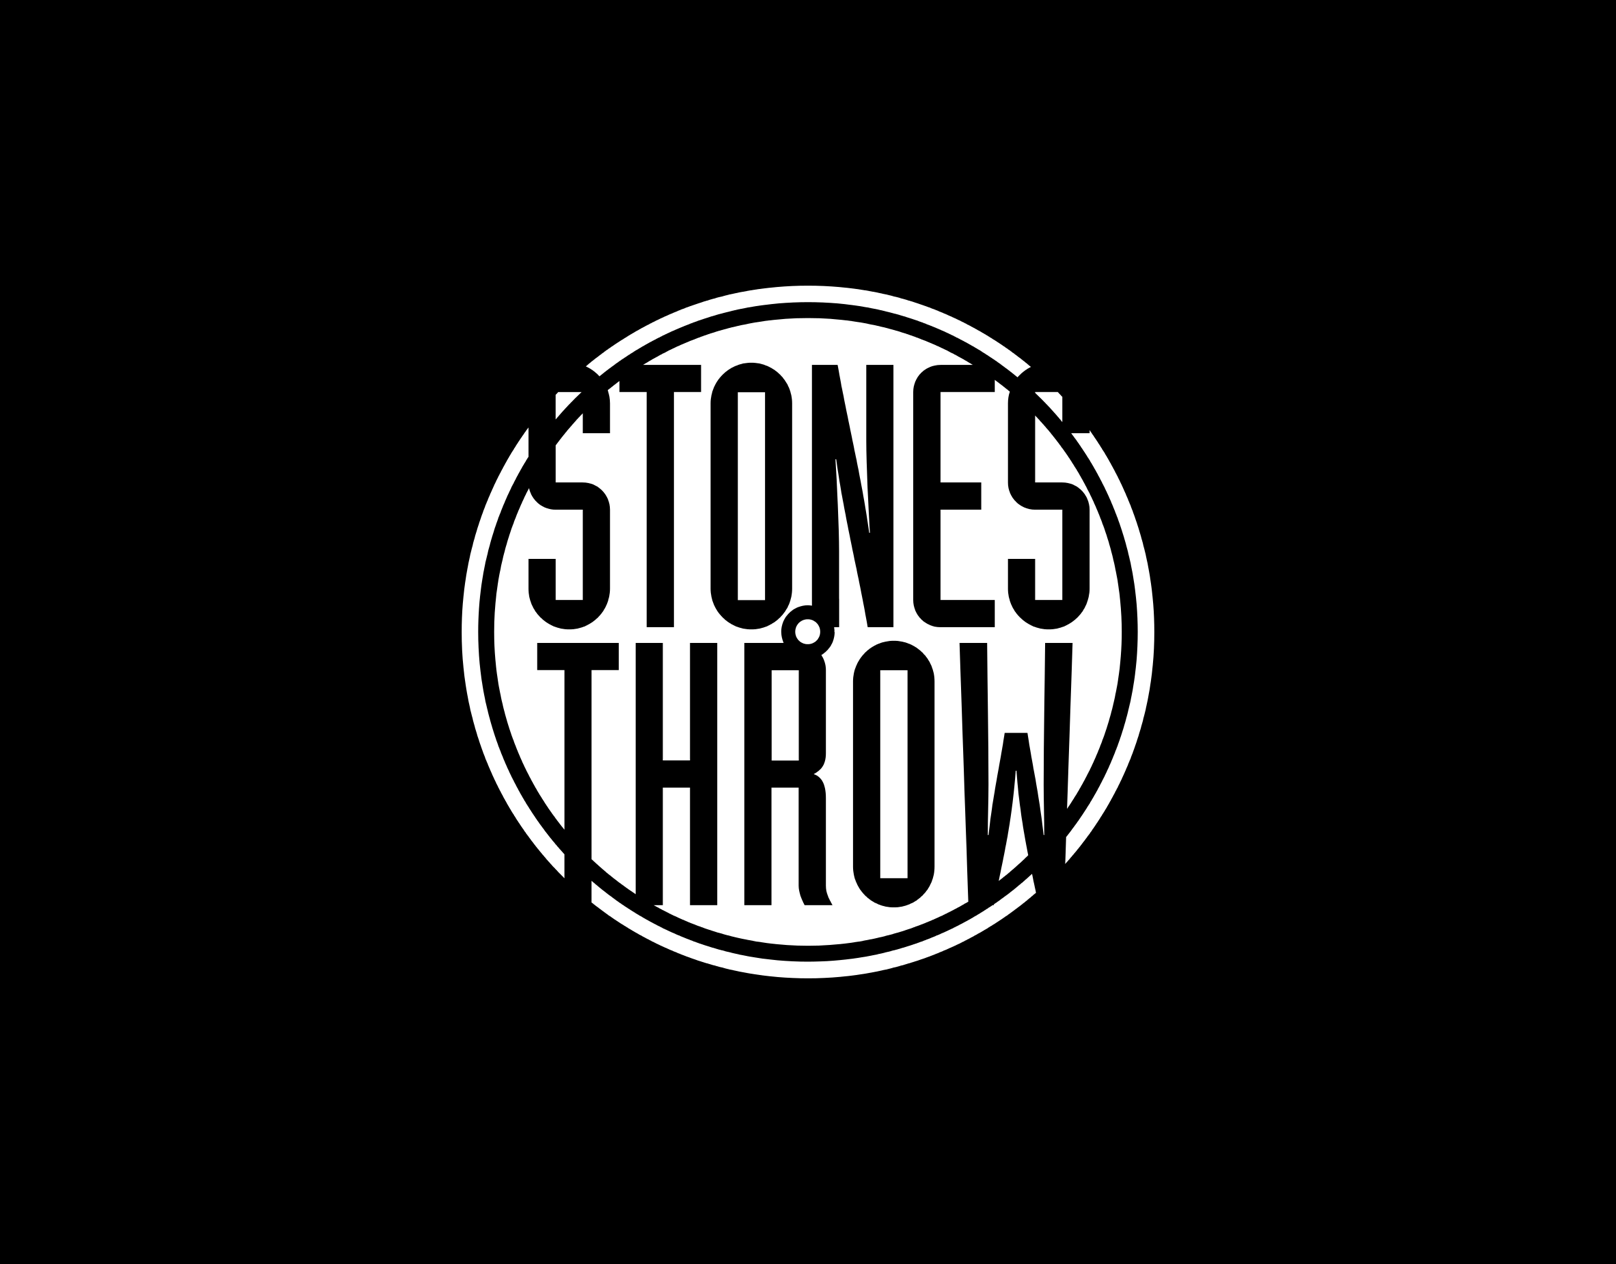 STONES THROW / documentary poster